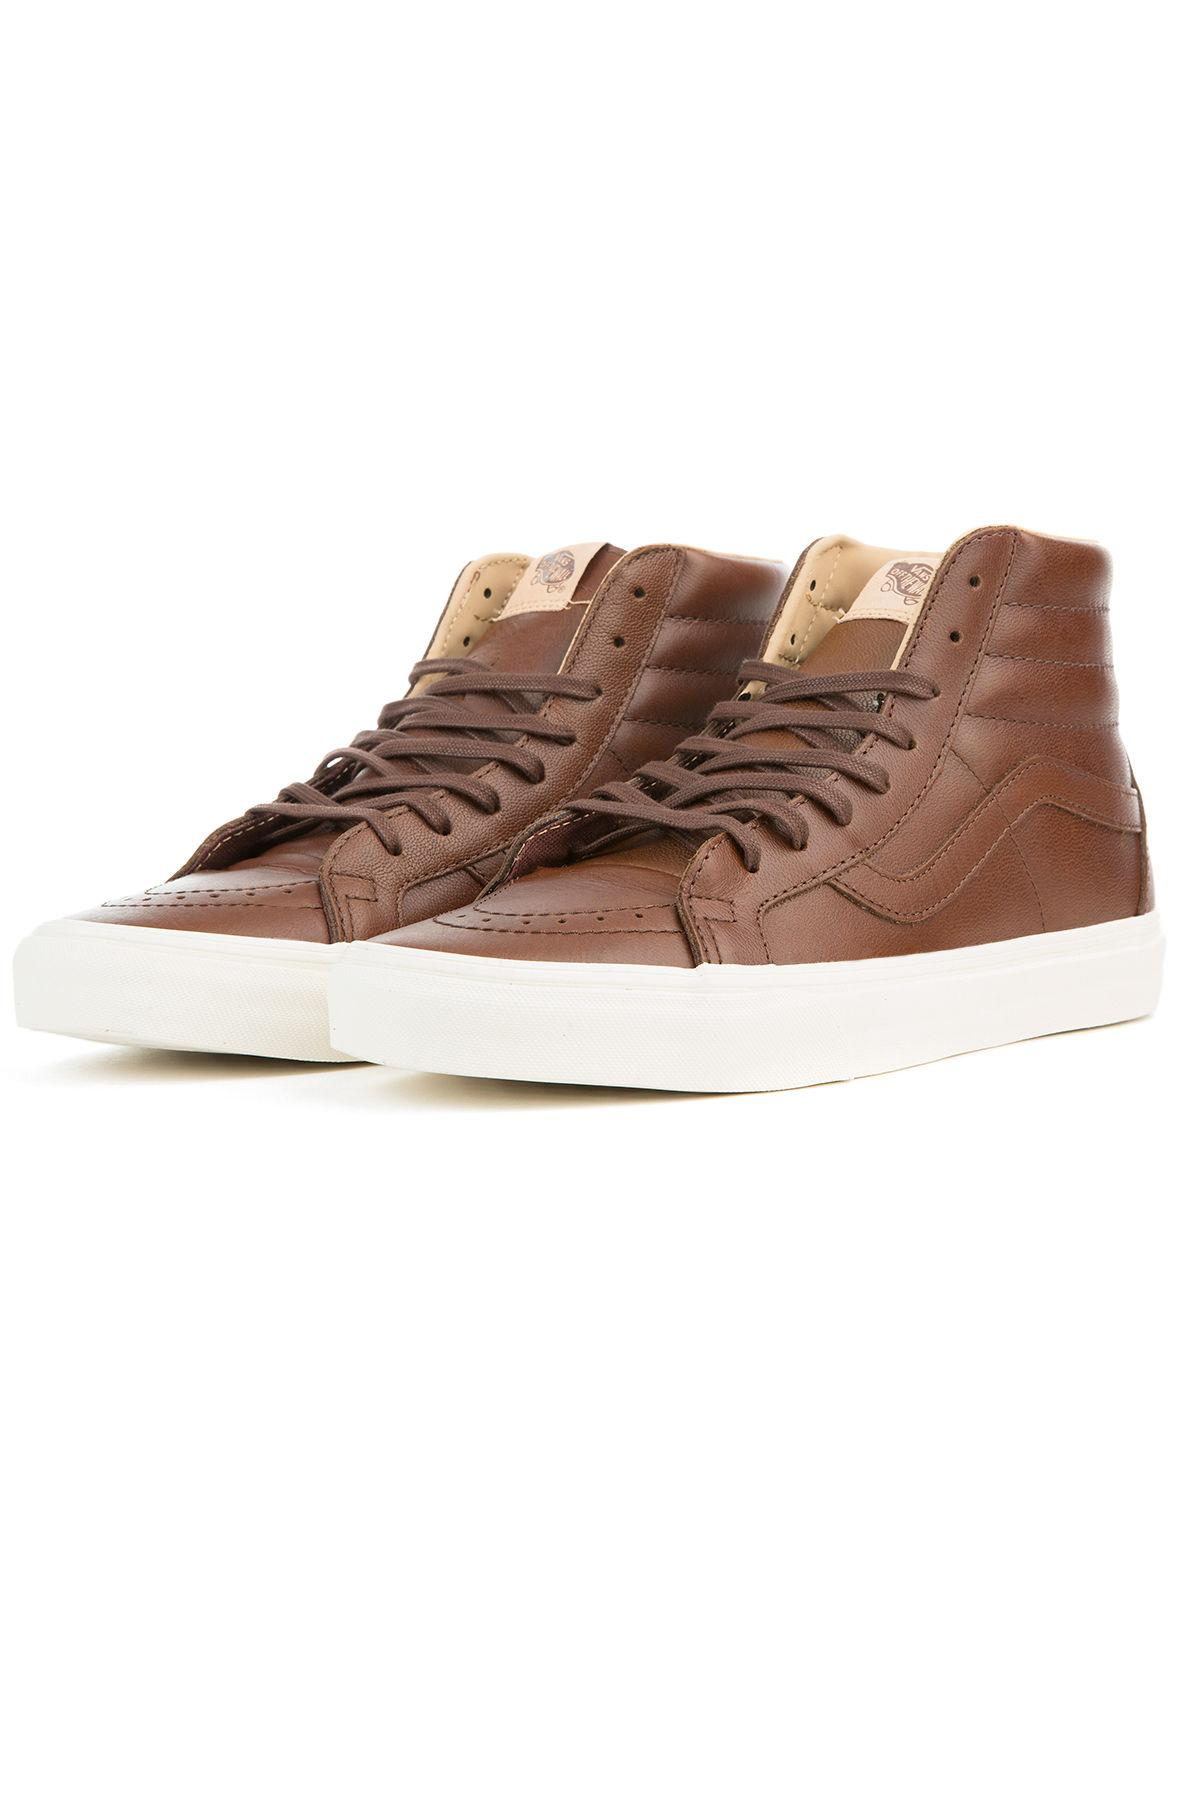 433979781d0 Lyst - Vans The Sk8 Hi Reissue Lux Leather In Shaved Chocolate And ...